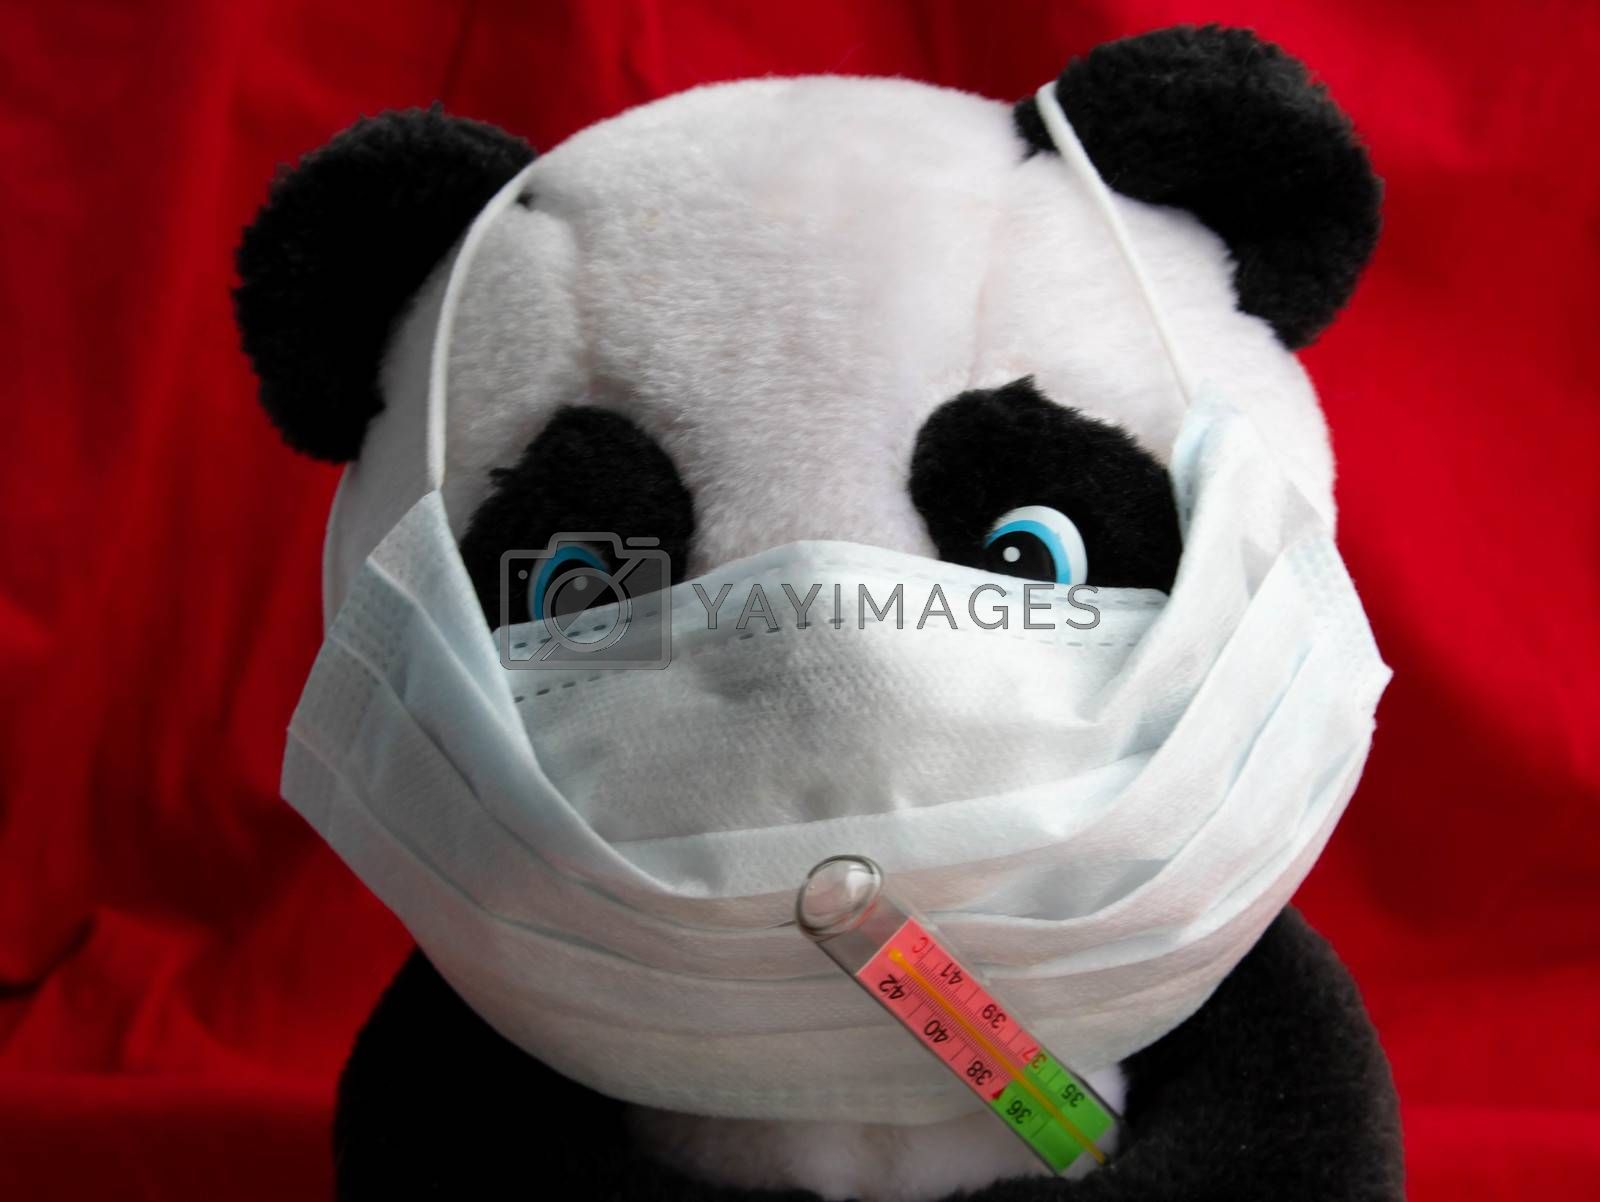 A toy panda in a medical mask with a thermometer sits on a red background. Coronavirus treatment concept